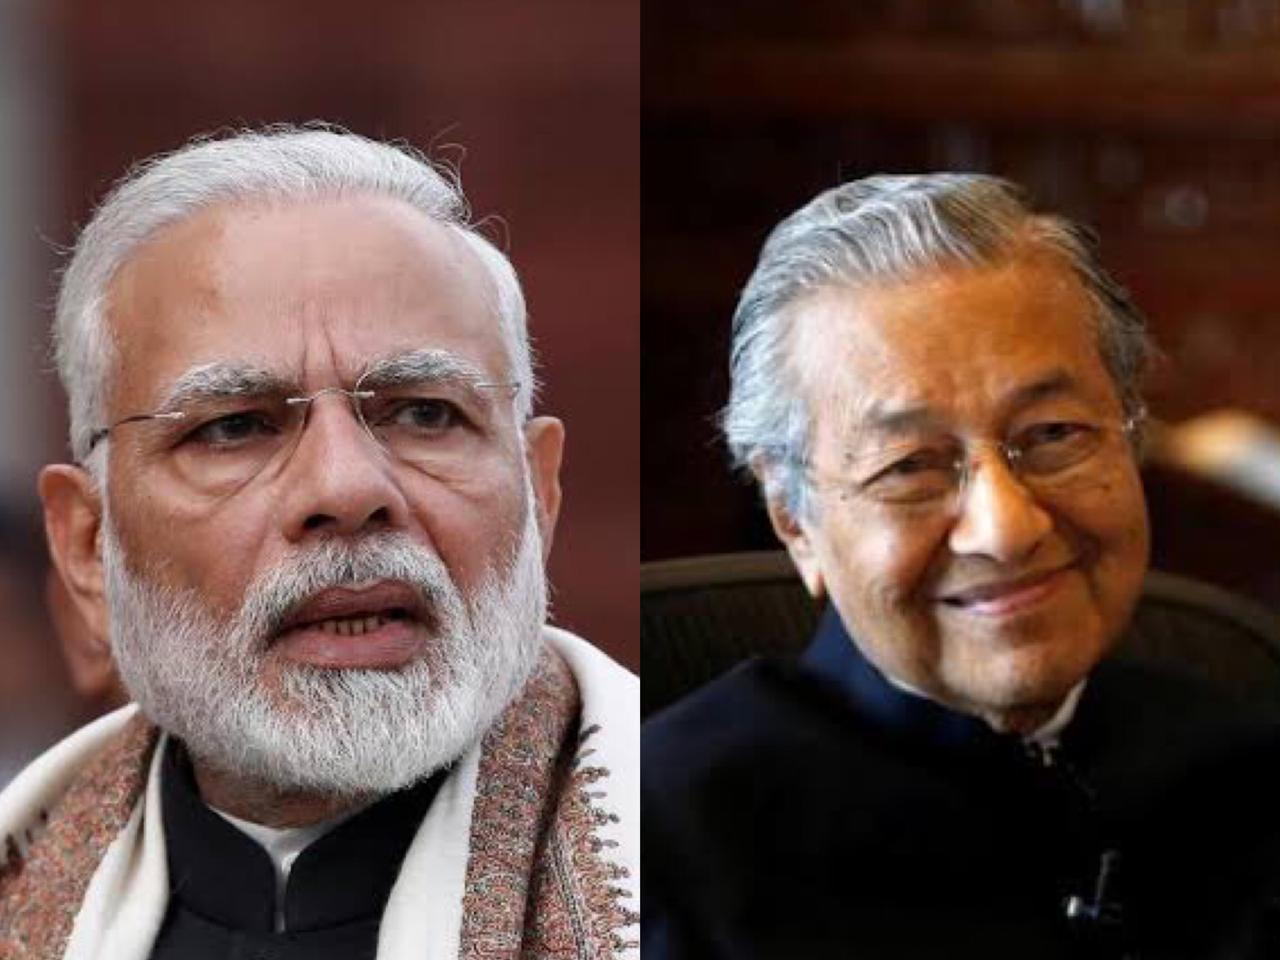 Reuters file photos of Indian Premier Narendra Modi [L] and Malaysian Prime Minister Mahathir Mohmad.